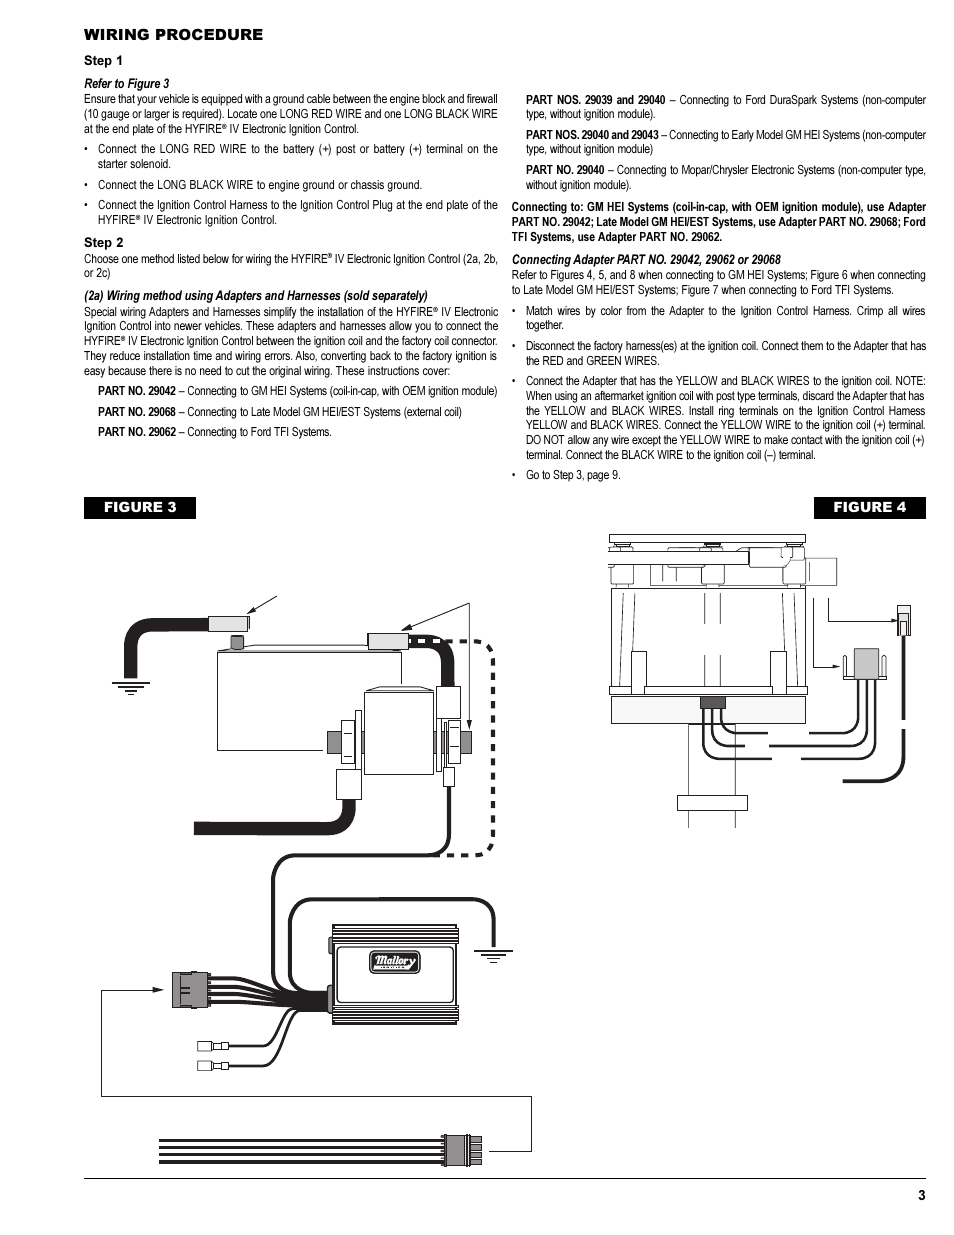 mallory ignition mallory hyfire iv series ignition system 692_697 page3?resize\\\\\\\\\\\\\\\\\\\\\\\\\\\=665%2C861 air alarm wiring diagram 2001 international air wiring diagrams  at fashall.co